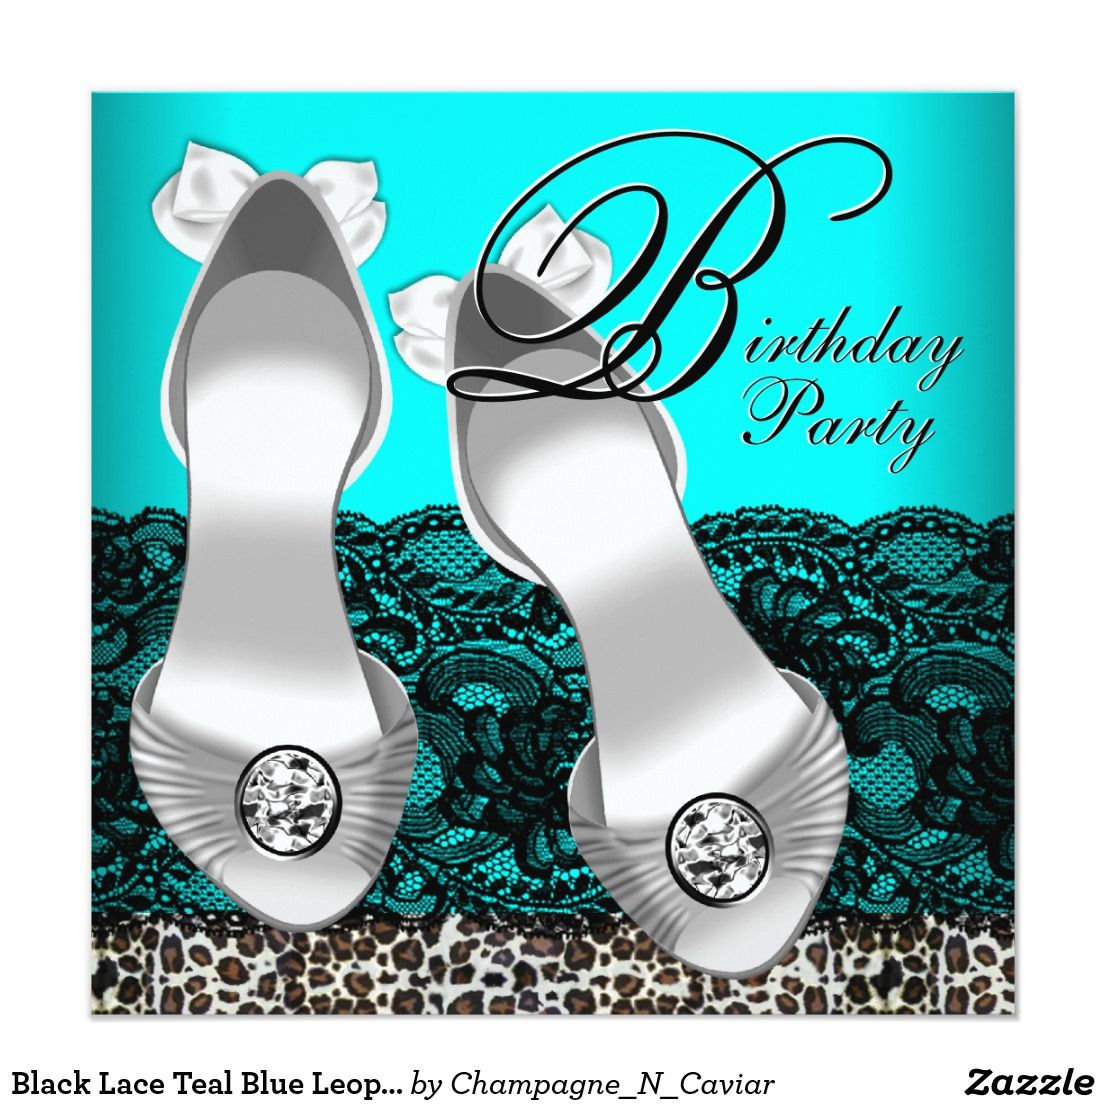 Black Lace Teal Blue Leopard Birthday Party Card | Leopard birthday ...